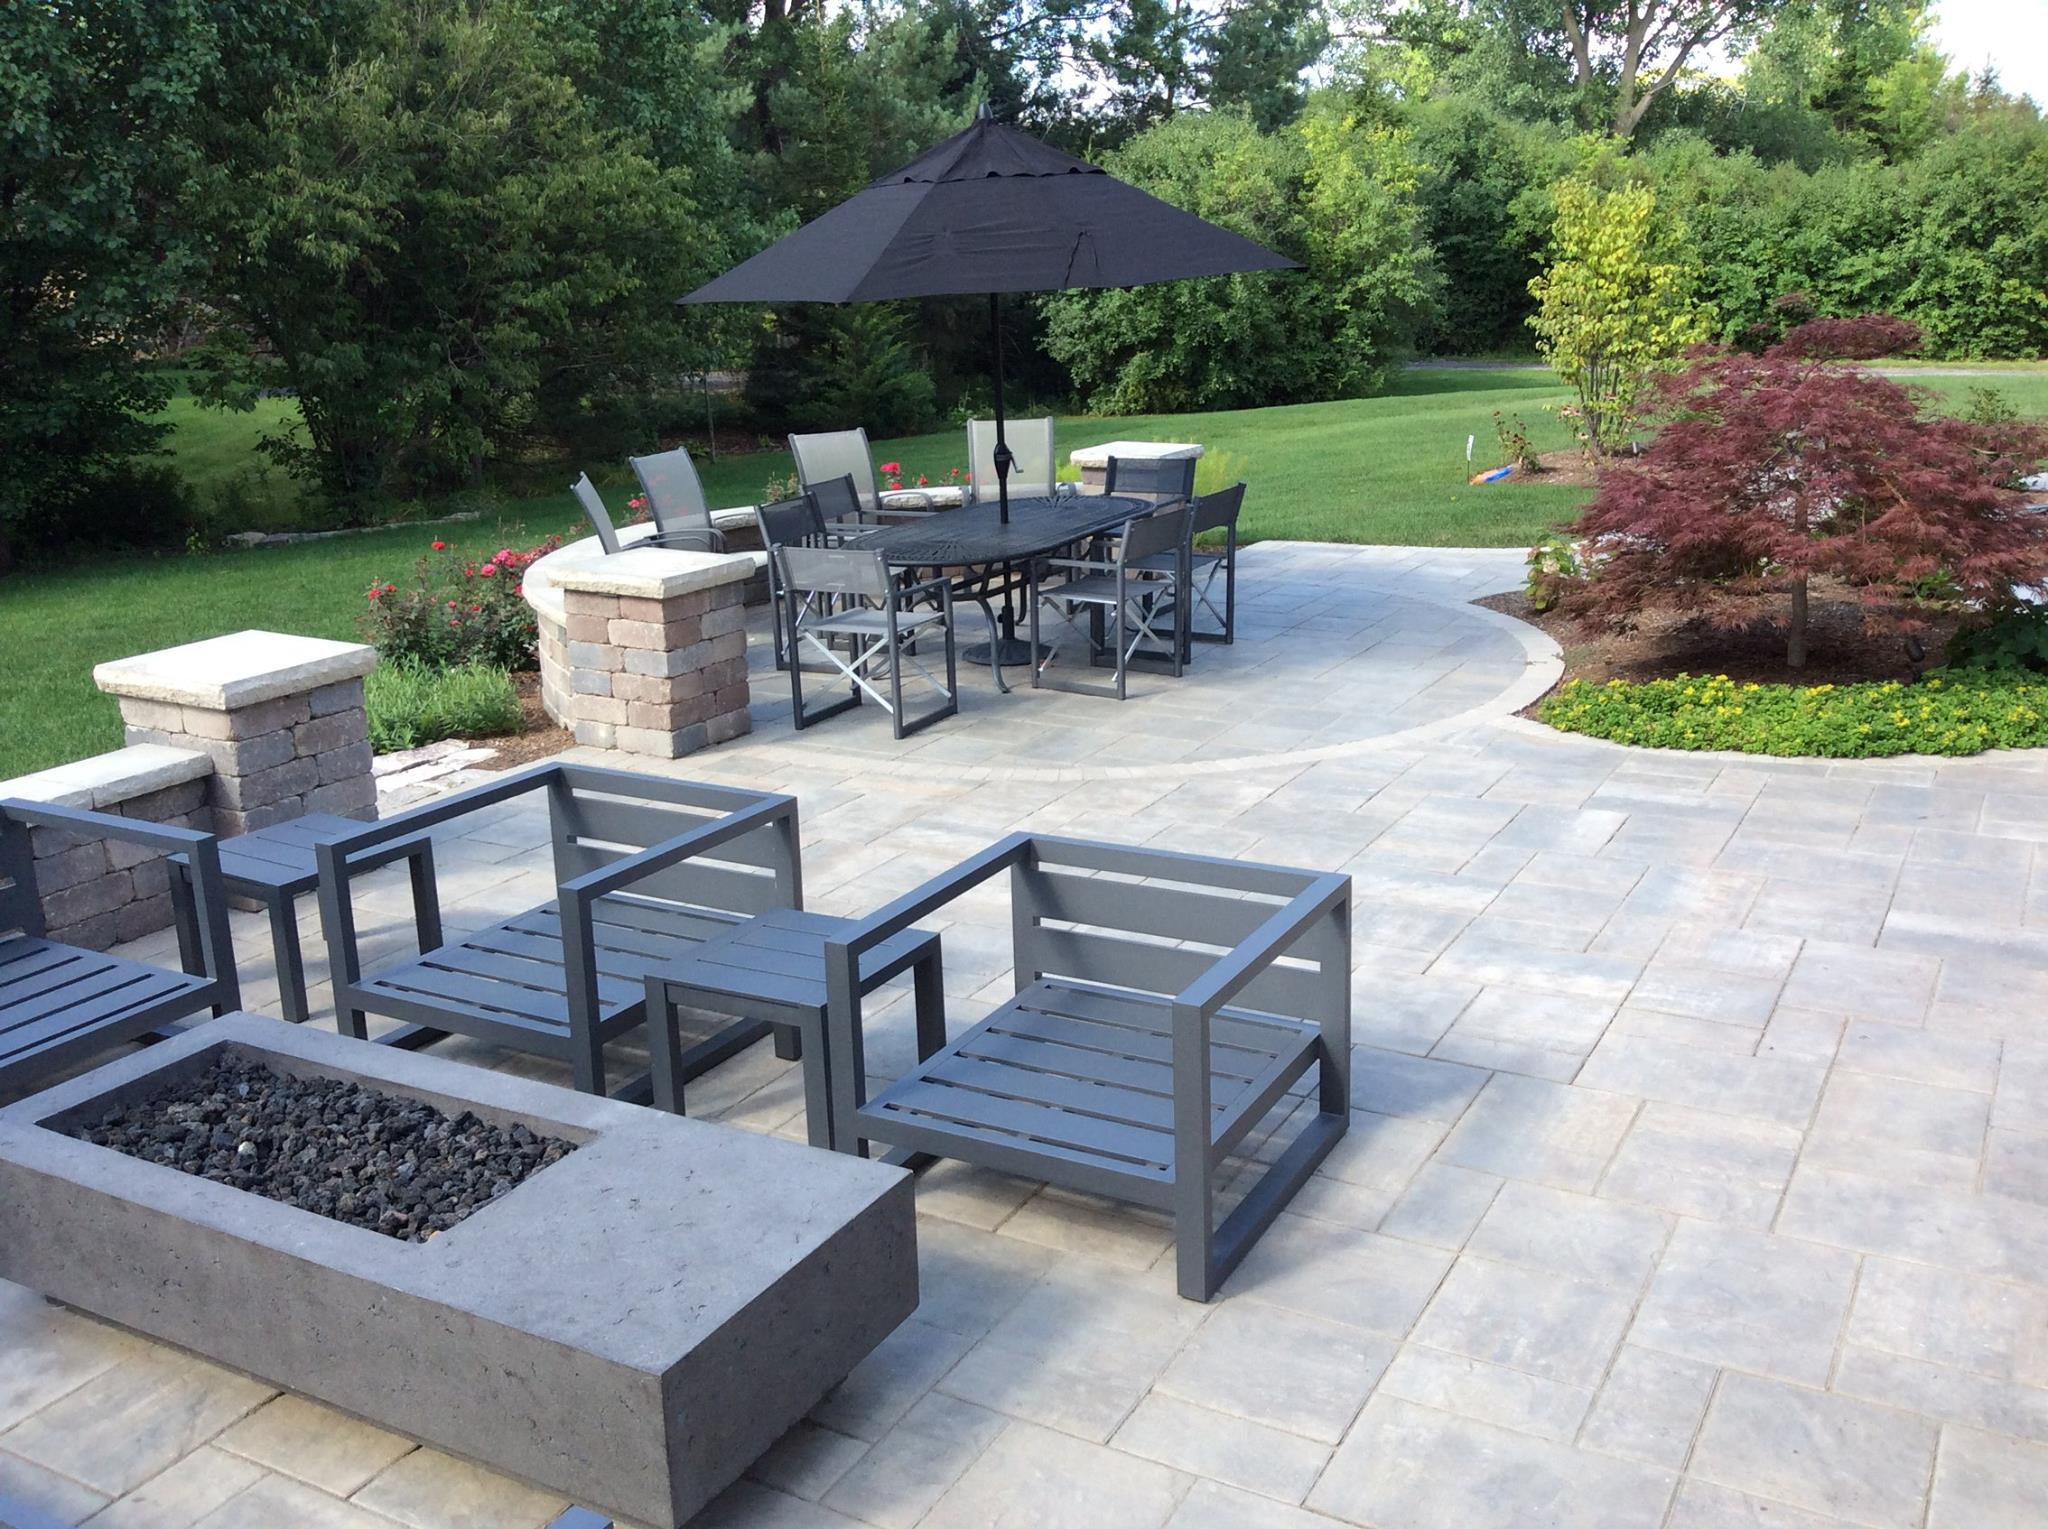 Naperville, Illinois outdoor fireplace - brick paving